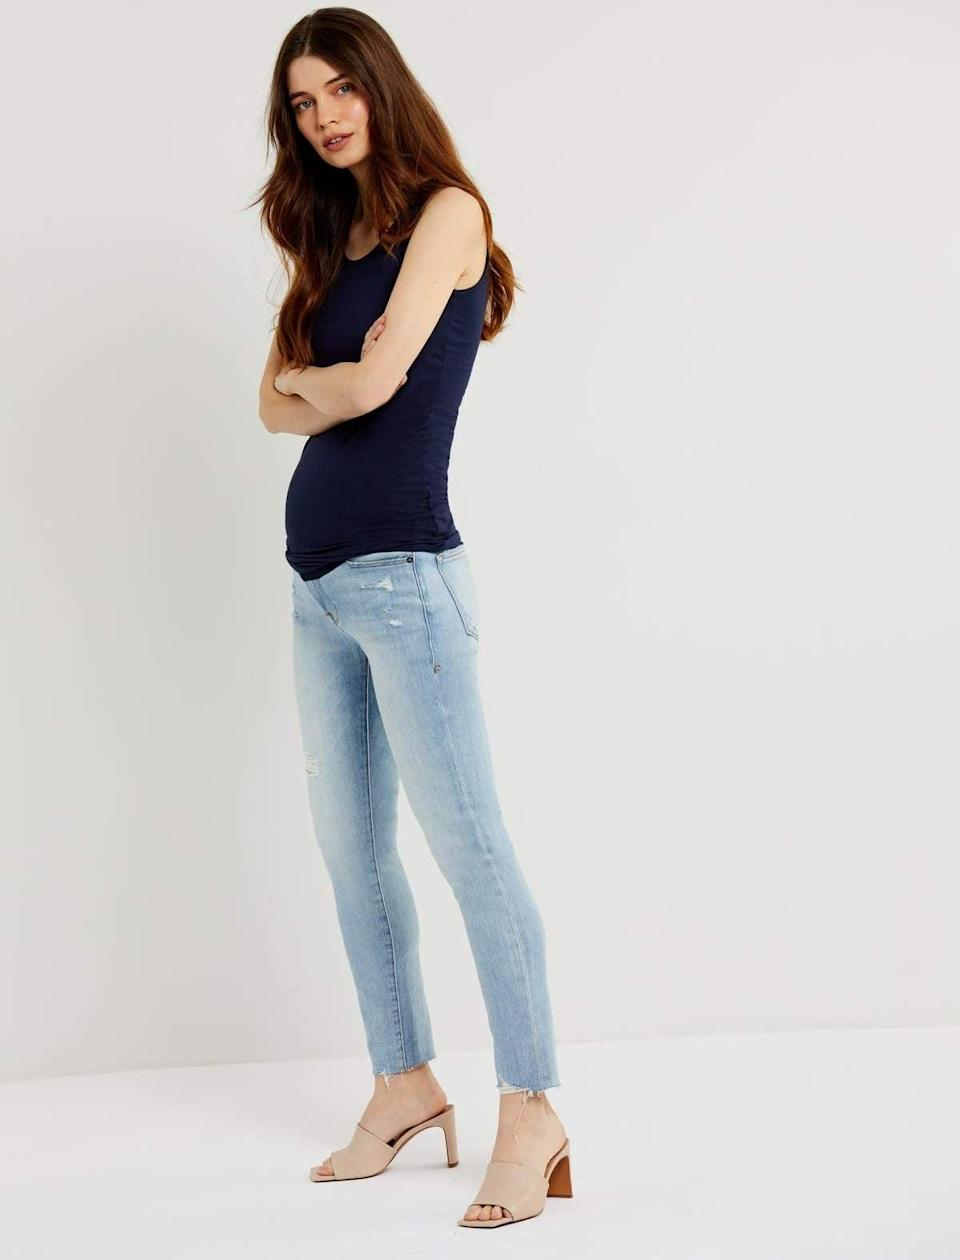 """<p>""""I'm currently expecting my first baby and I'm obsessed with everything available at A Pea in the Pod. These <span>Frame Le Skinny Crop Maternity Jeans</span> ($209) come with a the brand's """"Secret Fit Belly"""" that is perfect for expecting mamas who still want to dress up. I'm going to have to get a few more of these!"""" - Nikita Charuza, editor, Fashion</p>"""